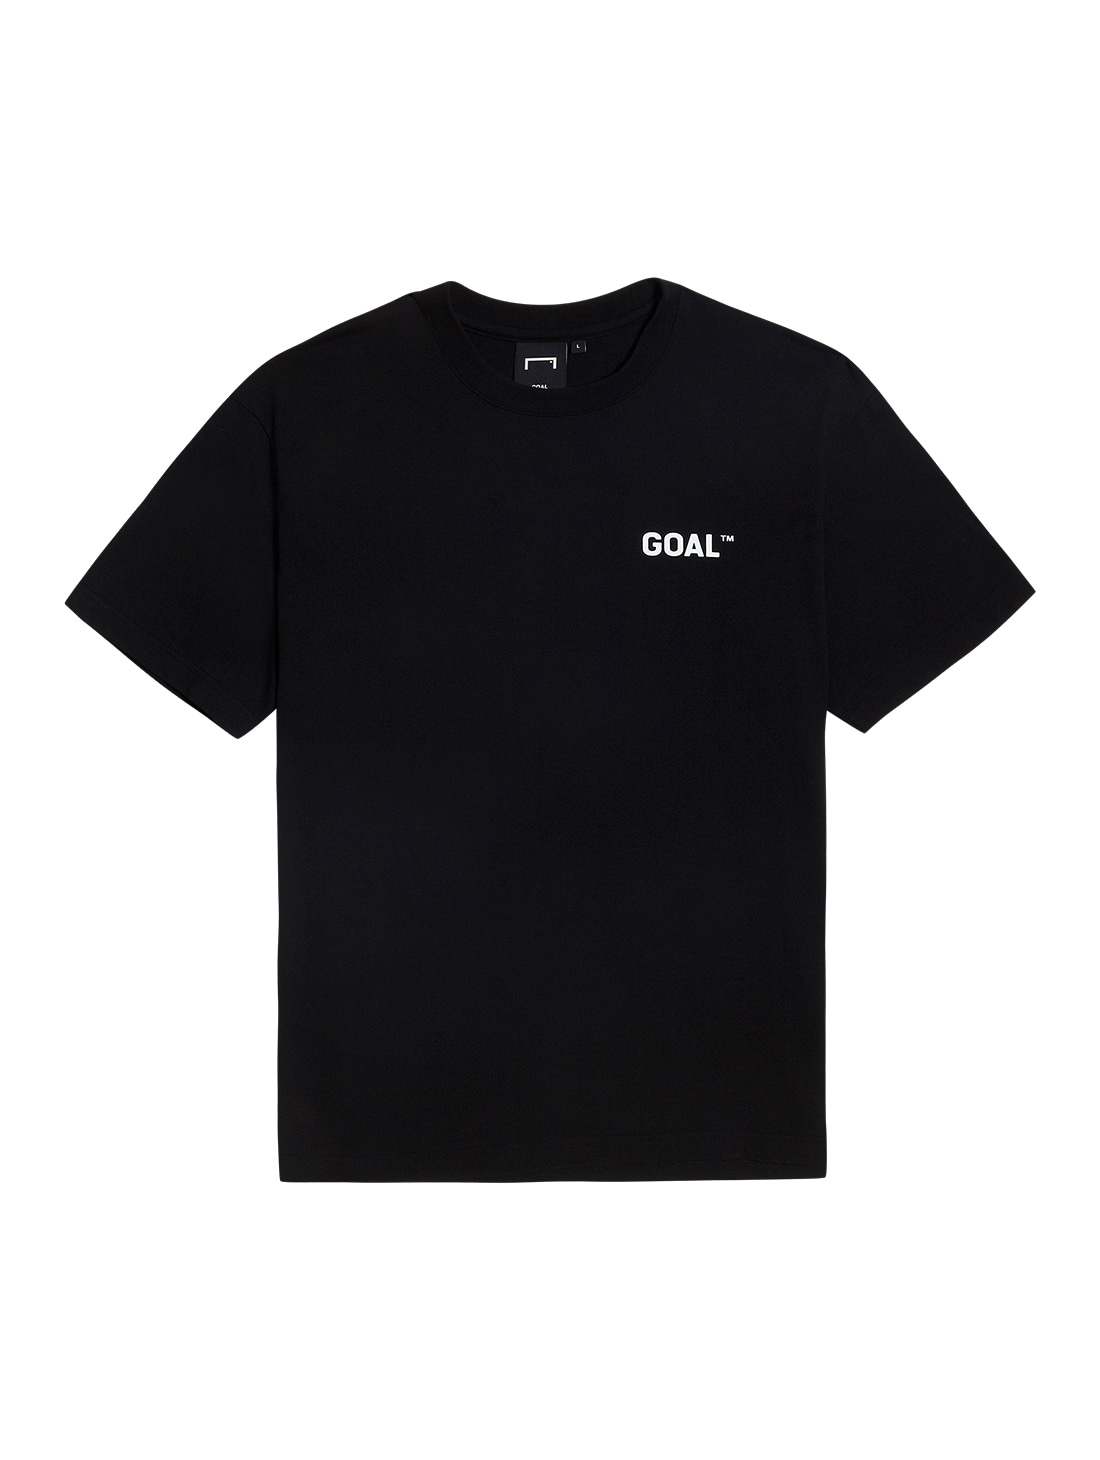 GOALSTUDIO TEXT LOGO TEE - BLACK